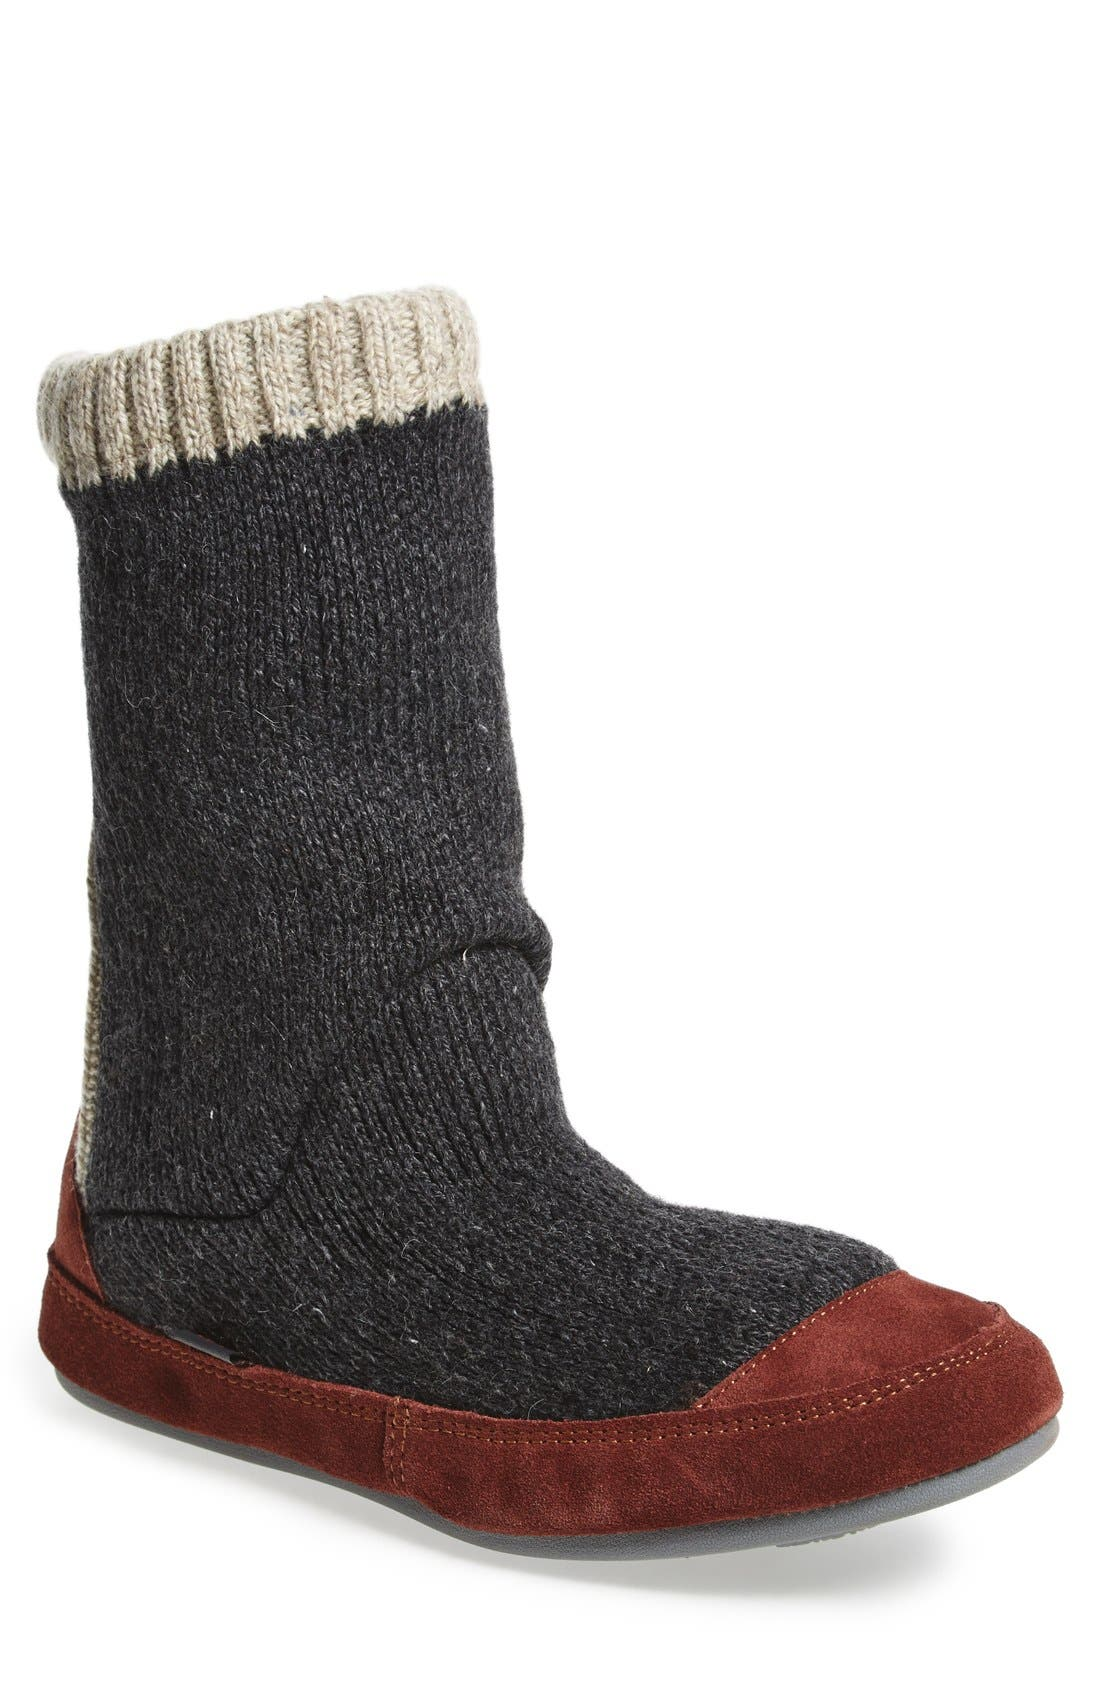 'Slouch Boot' Slipper,                         Main,                         color, 020